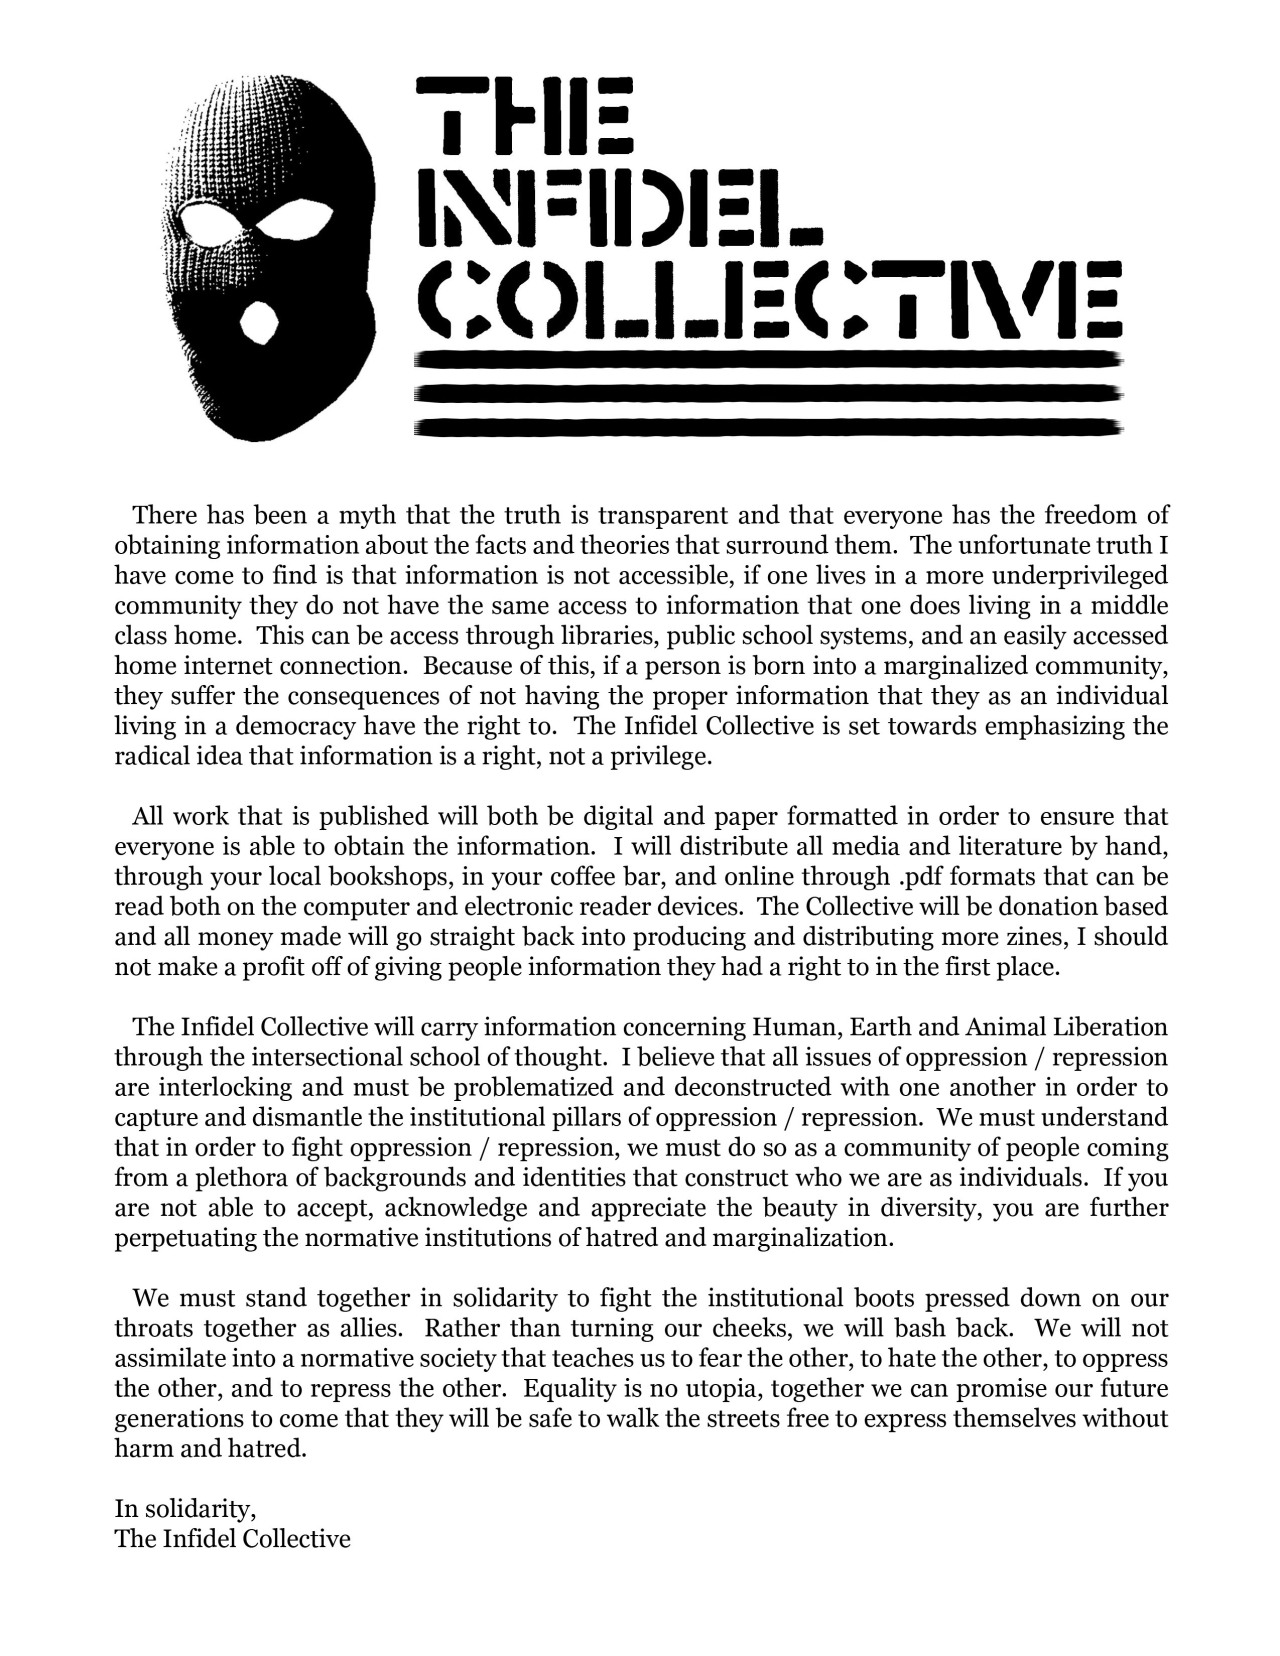 kvlt-xvx:  For those who cannot read the image above: The Infidel Collective Mission Statement             There has been a myth that the truth is transparent and that everyone has the freedom of obtaining information about the facts and theories that surround them.  The unfortunate truth I have come to find is that information is not accessible, if one lives in a more underprivileged community they do not have the same access to information that one does living in a middle class home.  This can be access through libraries, public school systems, and an easily accessed home internet connection.  Because of this, if a person is born into a marginalized community, they suffer the consequences of not having the proper information that they as an individual living in a democracy have the right to.  The Infidel Collective is set towards emphasizing the radical idea that information is a right, not a privilege.             All work that is published will both be digital and paper formatted in order to ensure that everyone is able to obtain the information.  I will distribute all media and literature by hand, through your local bookshops, in your coffee bar, and online through .pdf formats that can be read both on the computer and electronic reader devices.  The Collective will be donation based and all money made will go straight back into producing and distributing more zines, I should not make a profit off of giving people information they had a right to in the first place.             The Infidel Collective will carry information concerning Human, Earth and Animal Liberation through the intersectional school of thought.  I believe that all issues of oppression / repression are interlocking and must be problematized and deconstructed with one another in order to capture and dismantle the institutional pillars of oppression / repression.  We must understand that in order to fight oppression / repression, we must do so as a community of people coming from a plethora of backgrounds and identities that construct who we are as individuals.  If you are not able to accept, acknowledge and appreciate the beauty in diversity, you are further perpetuating the normative institutions of hatred and marginalization.             We must stand together in solidarity to fight the institutional boots pressed down on our throats together as allies.  Rather than turning our cheeks, we will bash back.  We will not assimilate into a normative society that teaches us to fear the other, to hate the other, to oppress the other, and to repress the other.  Equality is no utopia, together we can promise our future generations to come that they will be safe to walk the streets free to express themselves without harm and hatred. In solidarity,The Infidel Collective